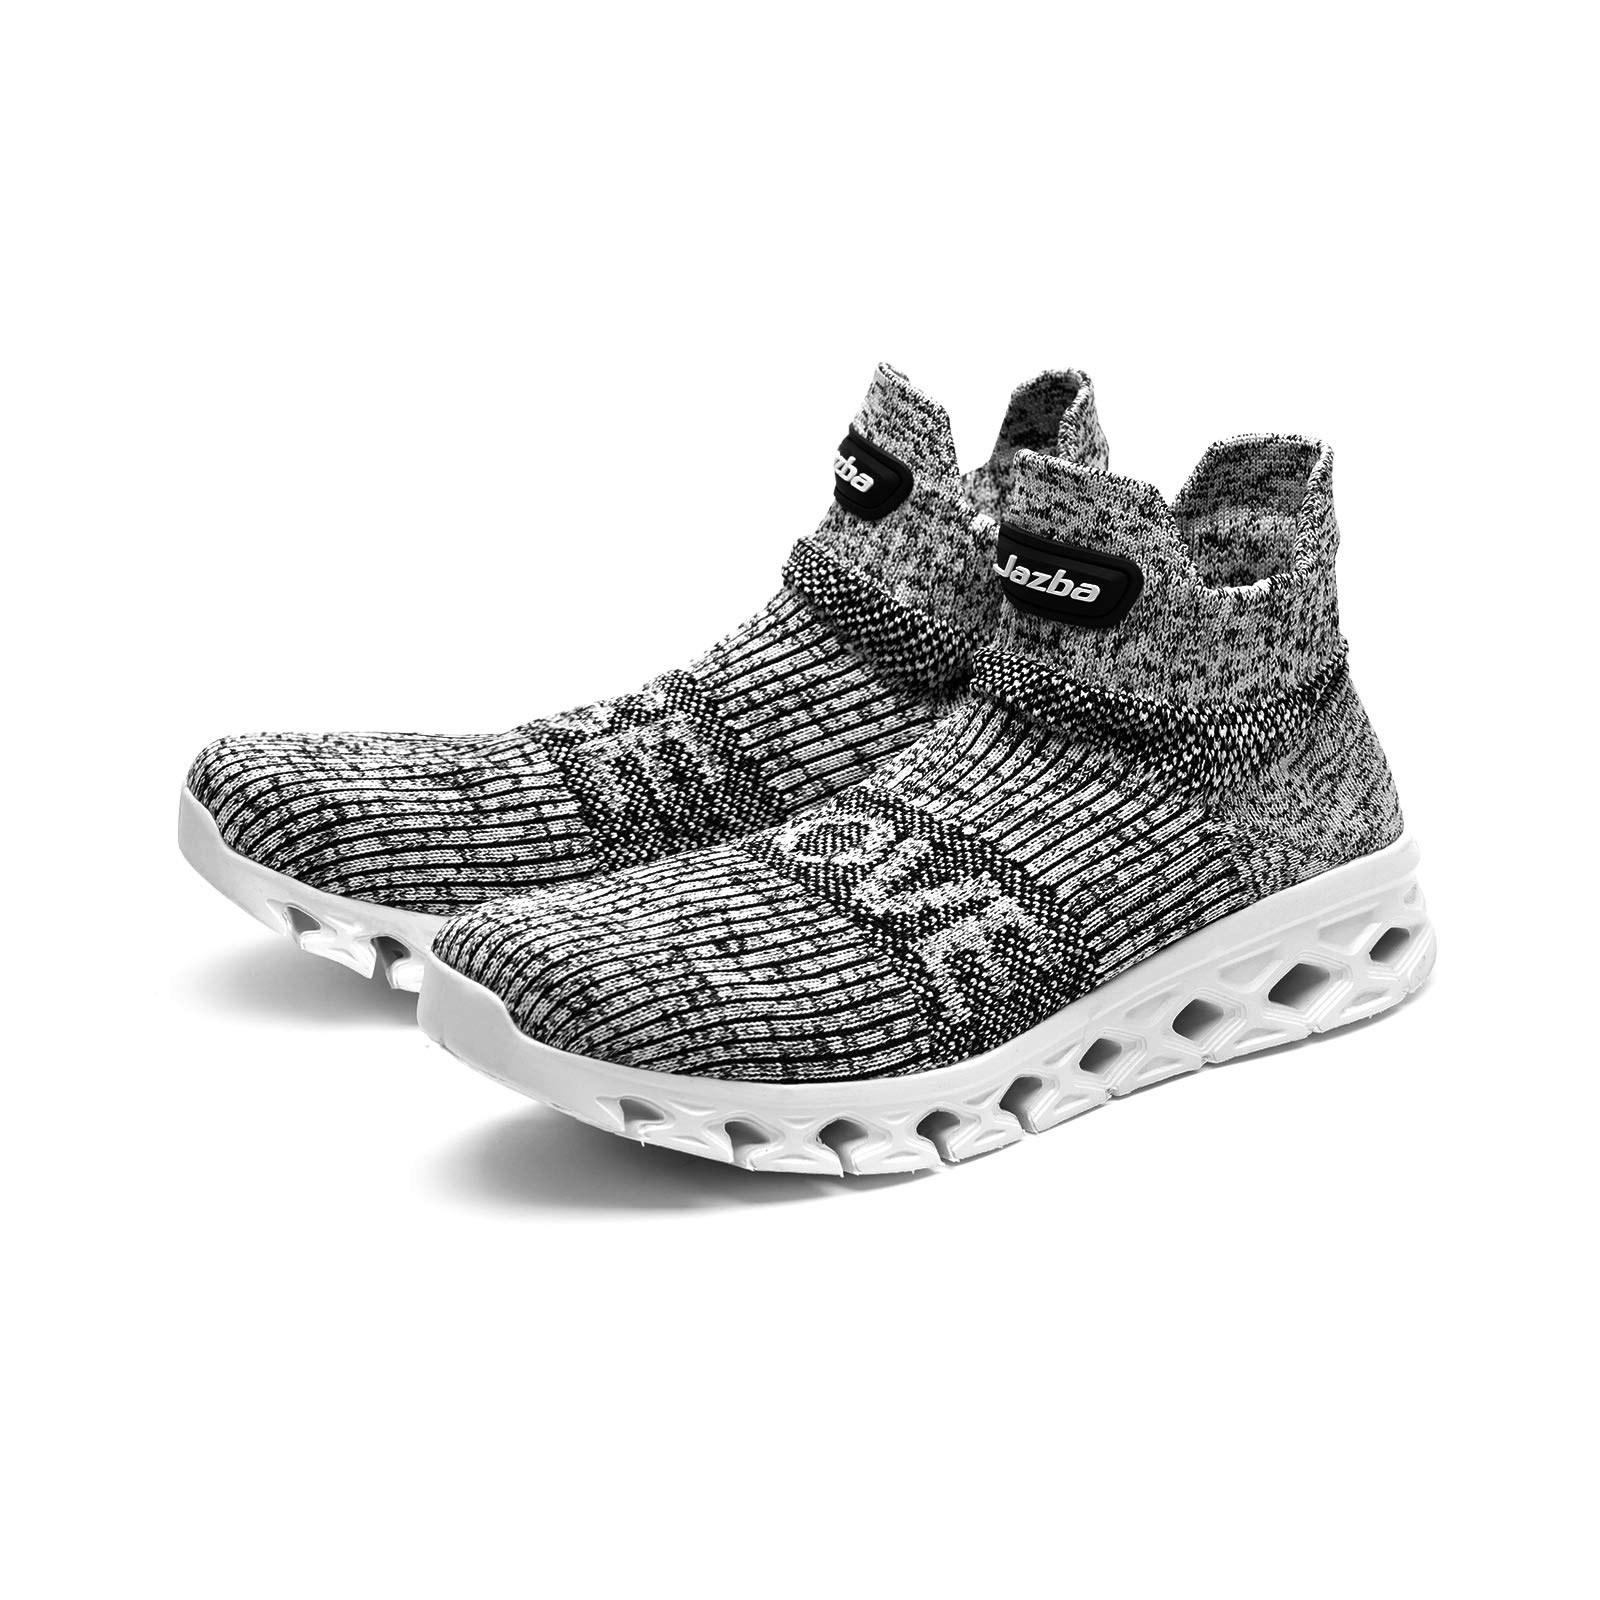 Jazba Sockun Sock Sneakers Easy On Easy Off Knitted Comfort Slip On Shoe for Men Workout Crossfit Lightweight Trainers for Yoga Travel Holiday Photography, Grey, Euro 42/US 9